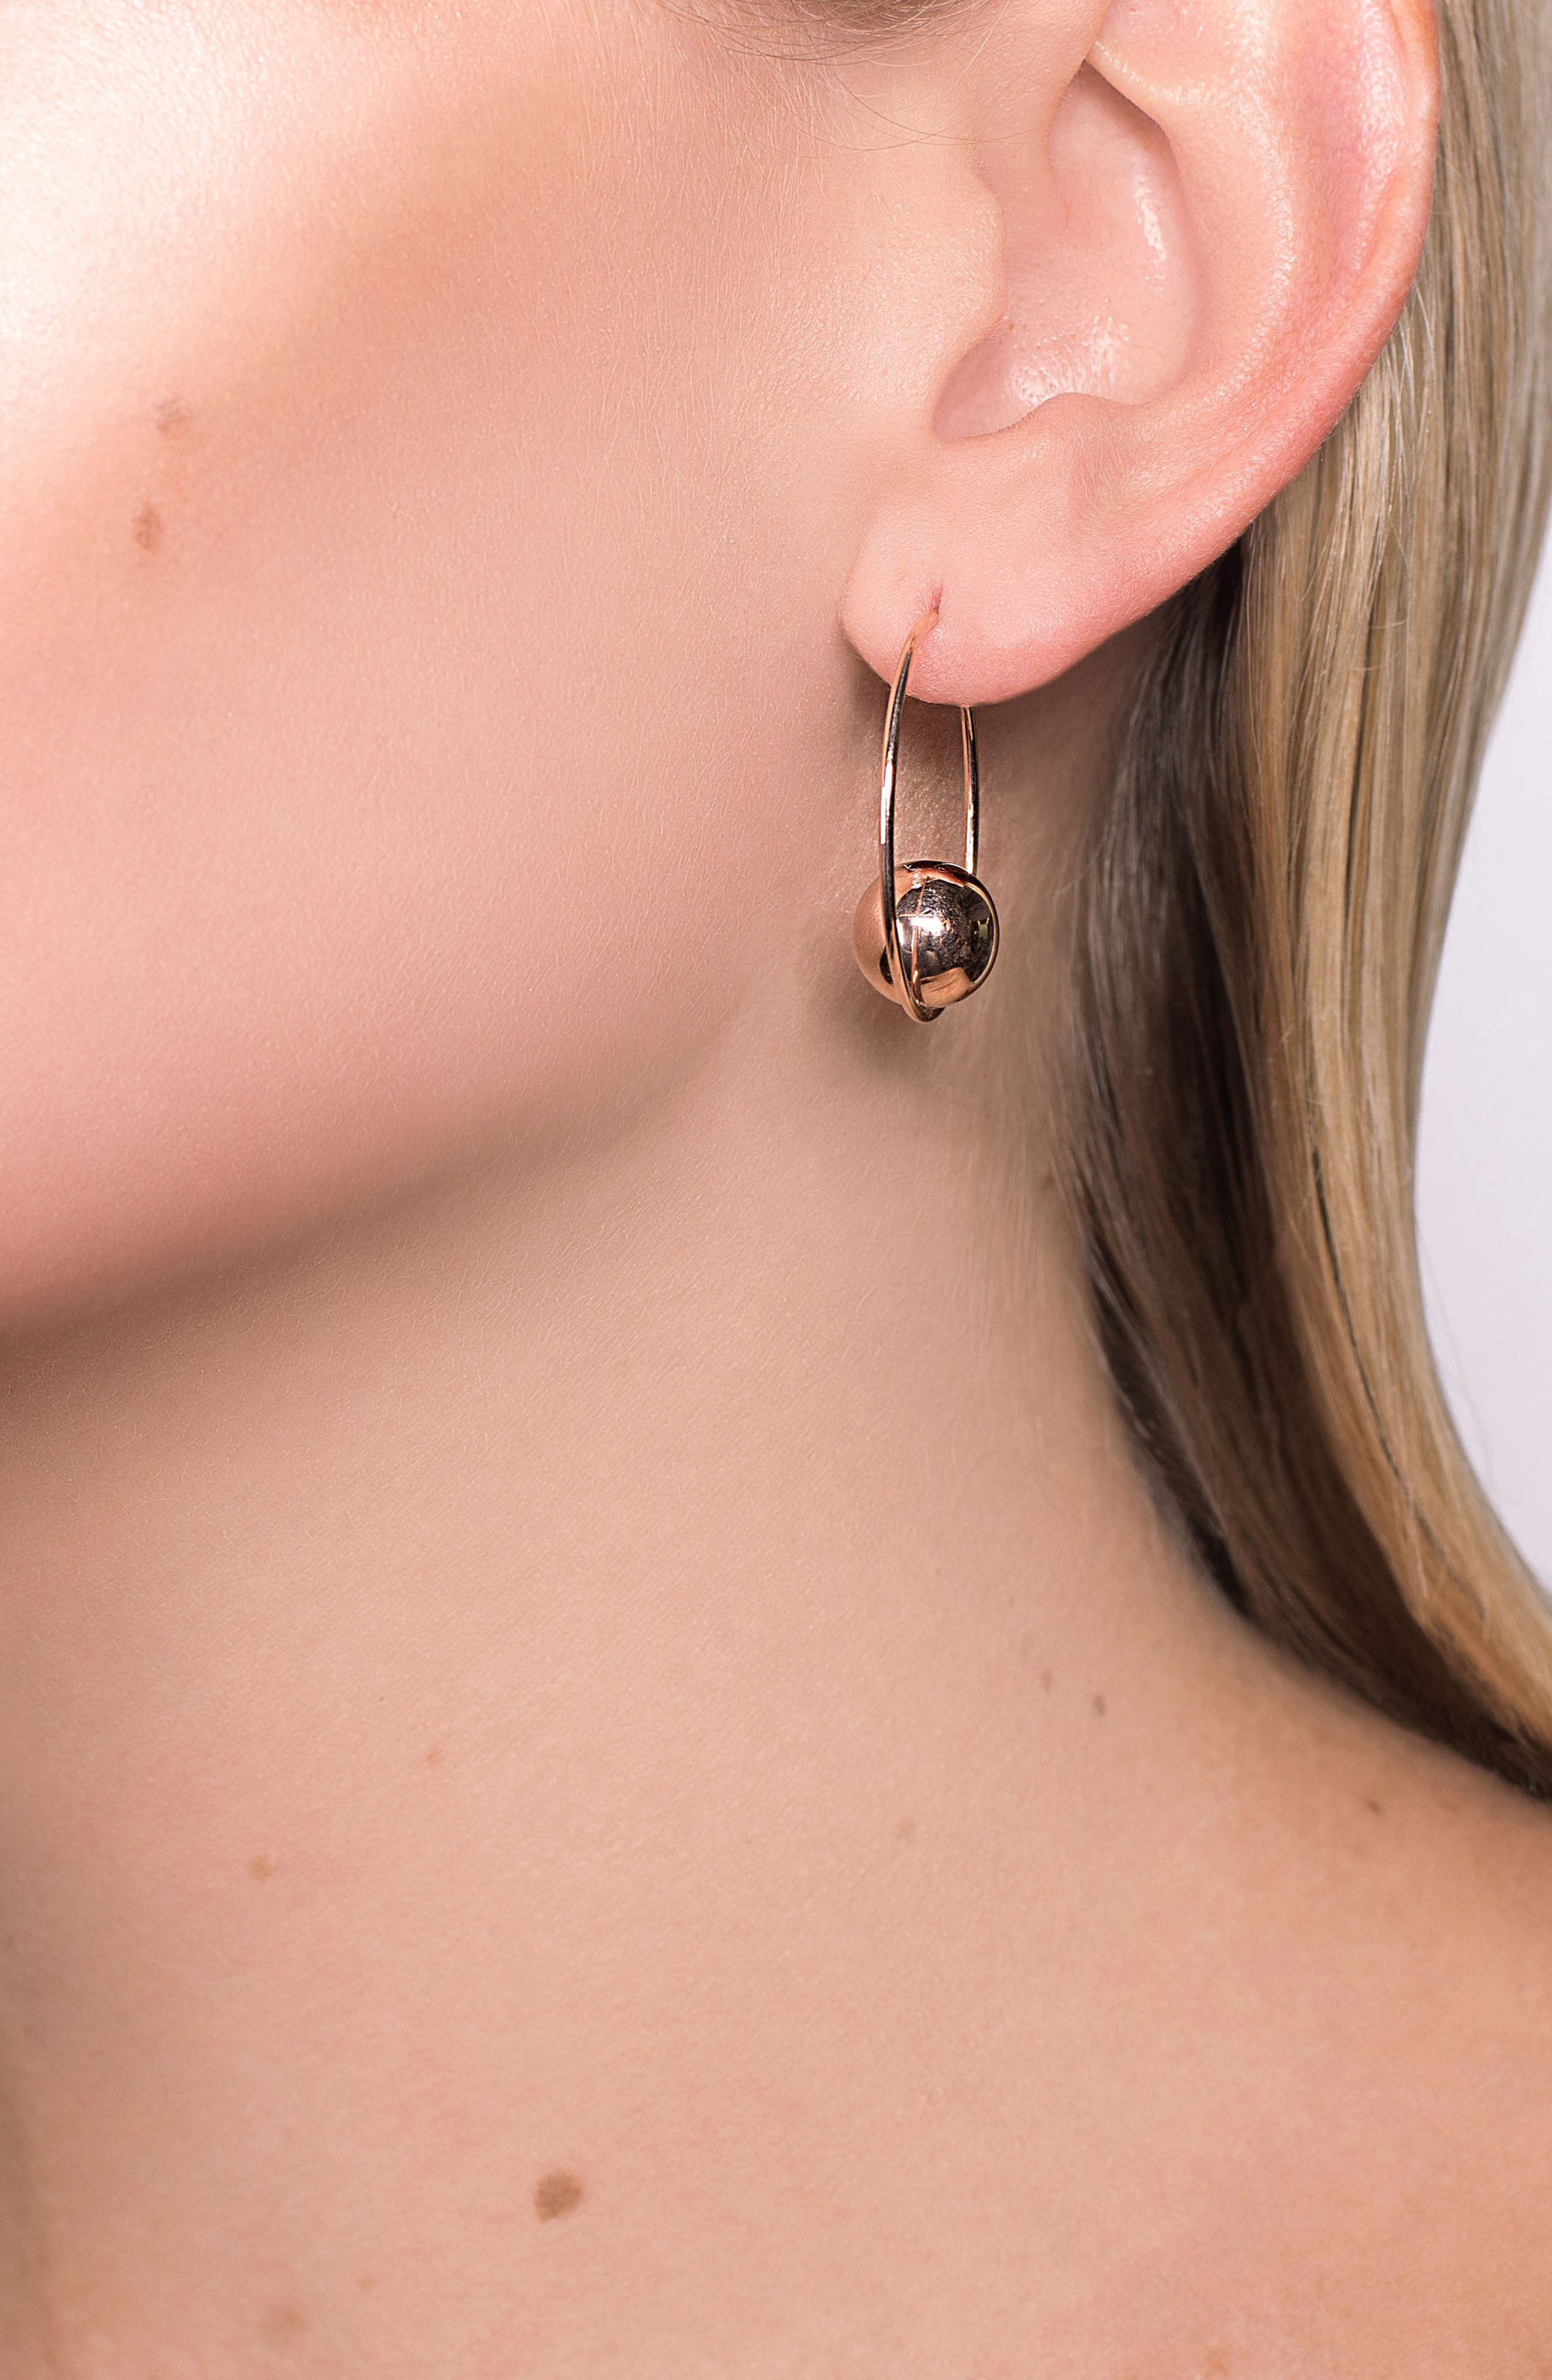 LANA JEWELRY,                             Hollow Ball Large Hoop Earrings,                             Alternate thumbnail 2, color,                             GOLD